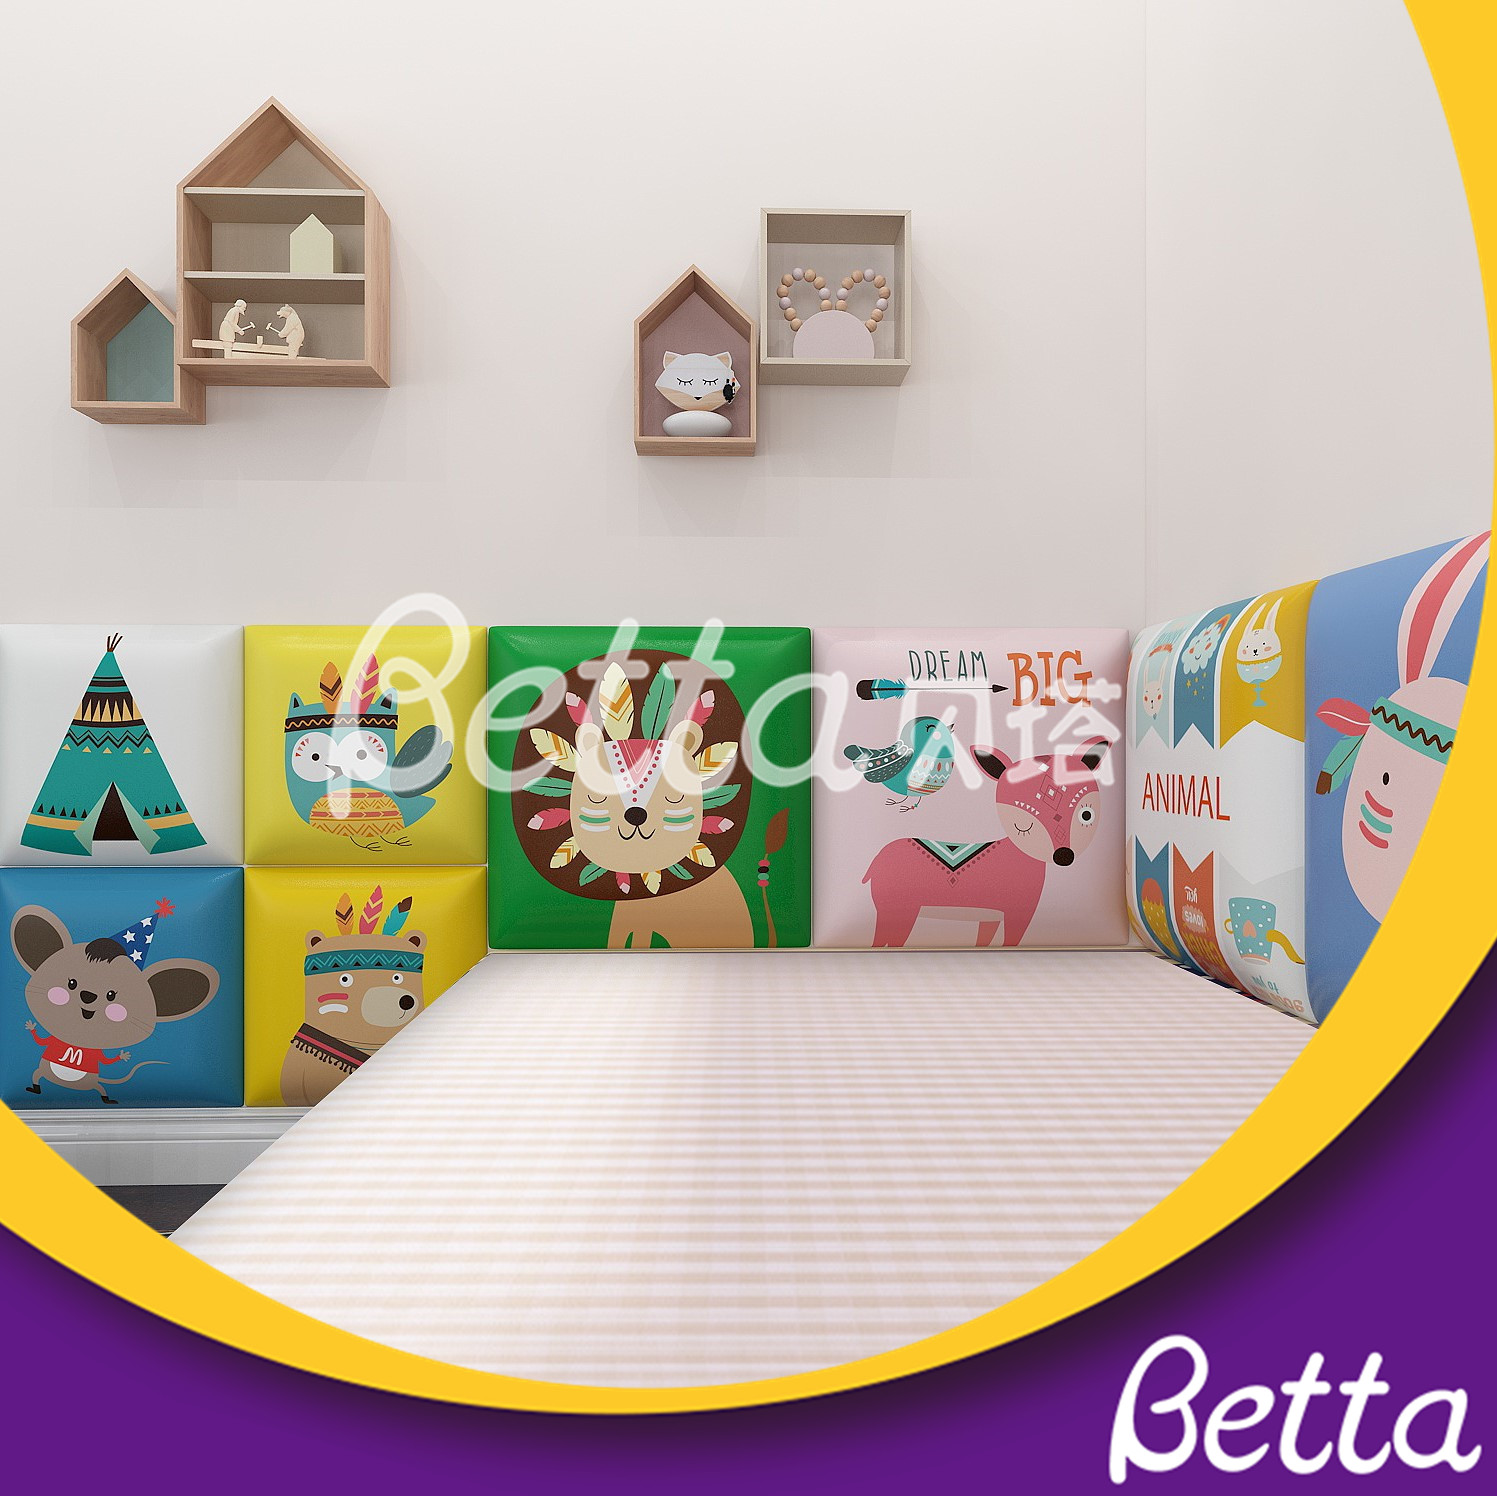 Children Soft Wall for Indoor Playground Safety Play in Kindergarten